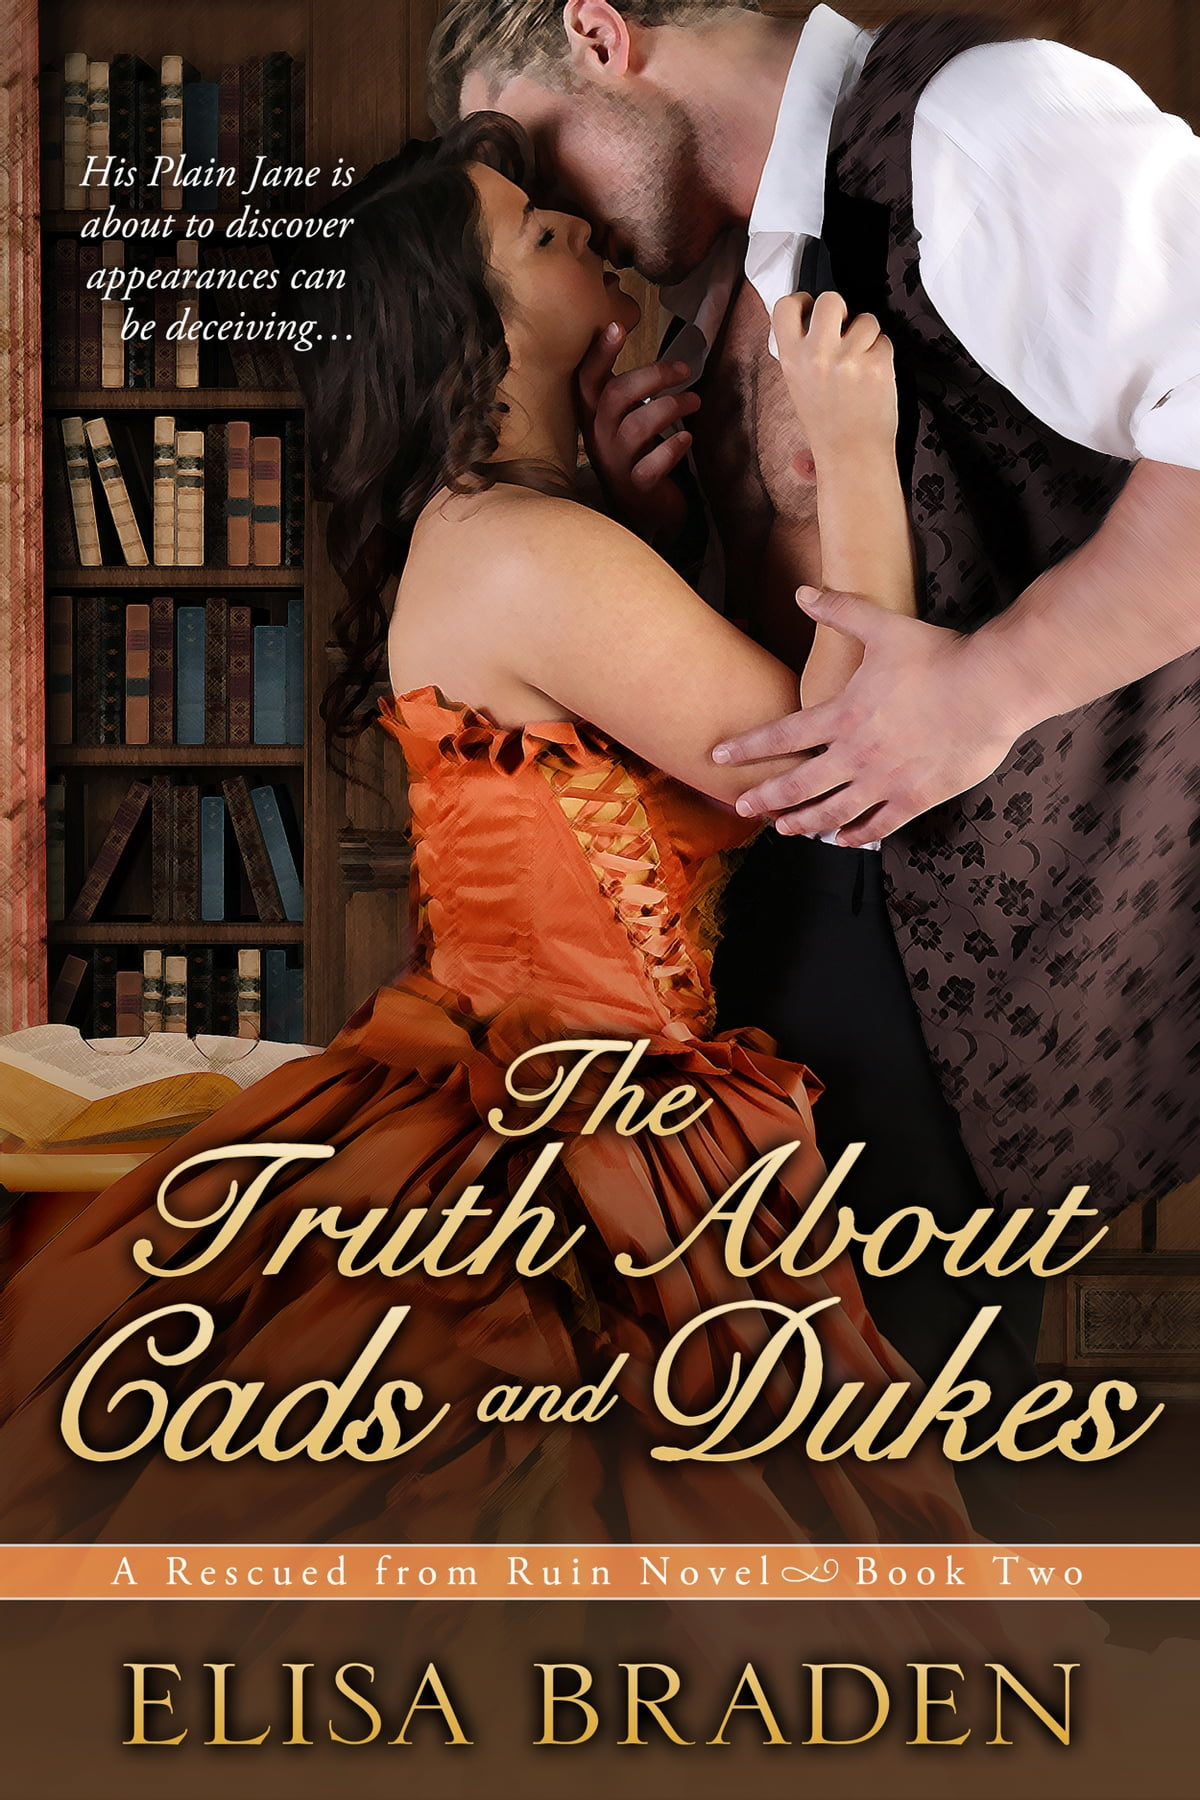 The reluctant duchess ebook by sharon cullen 9781101883648 the truth about cads and dukes ebook by elisa braden fandeluxe PDF